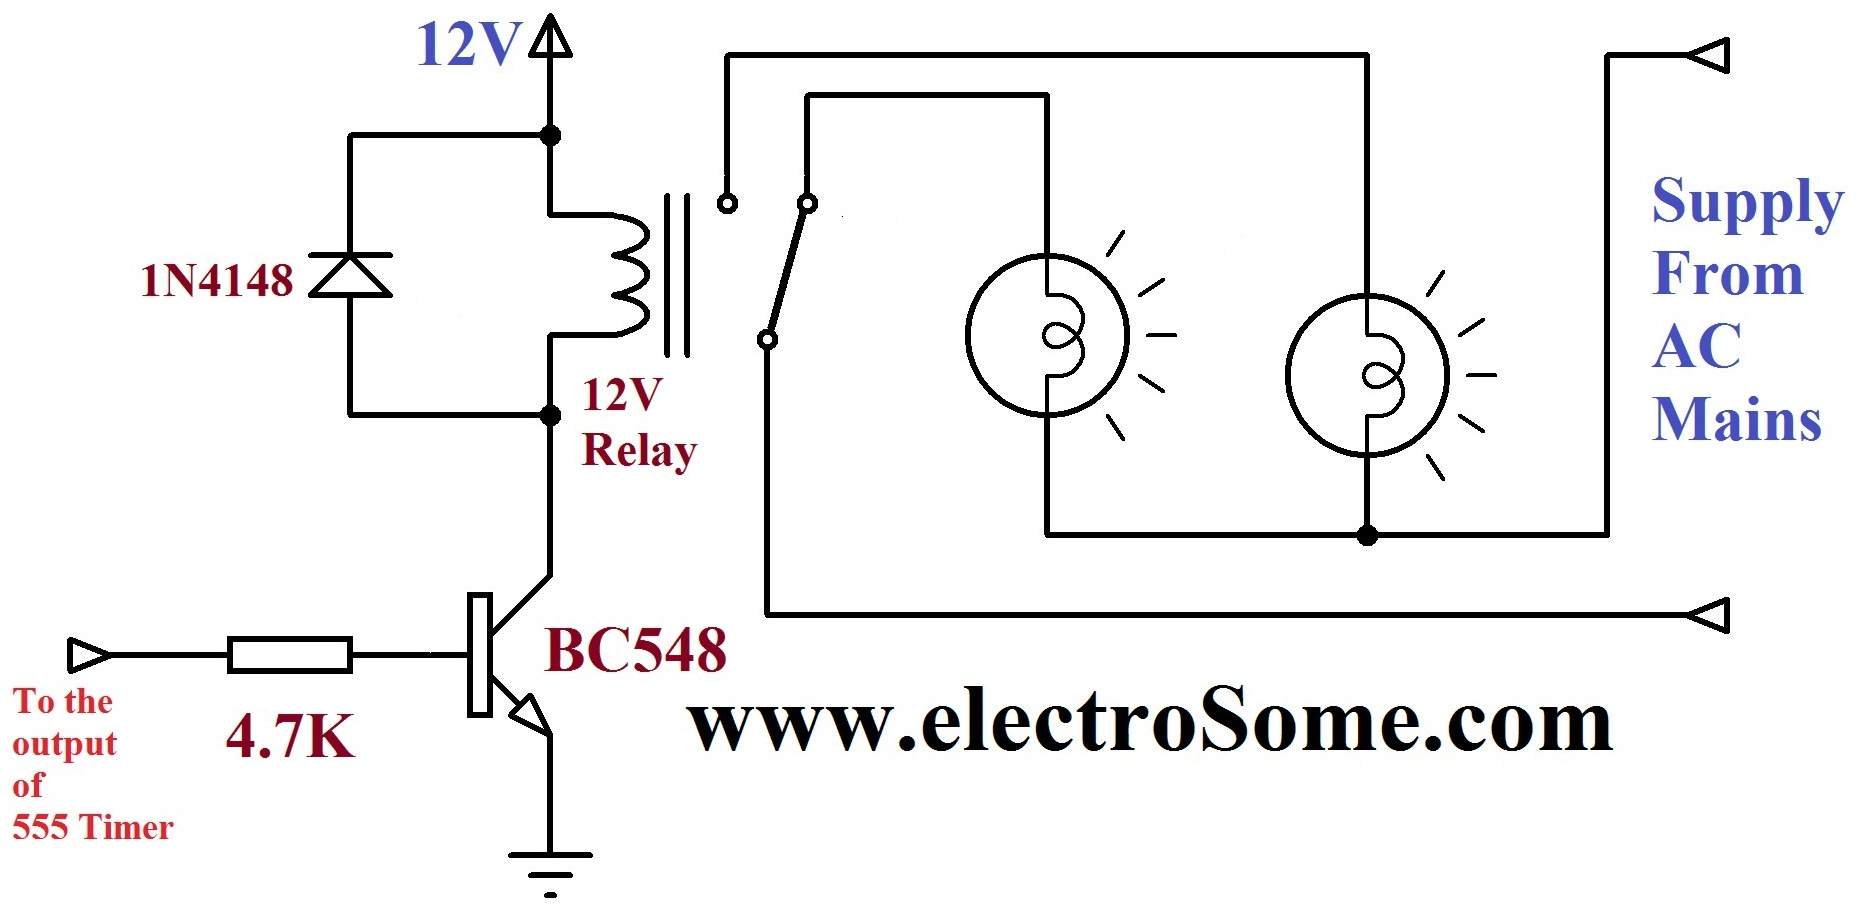 led light circuit diagram for dummies application server dancing using 555 timer relay